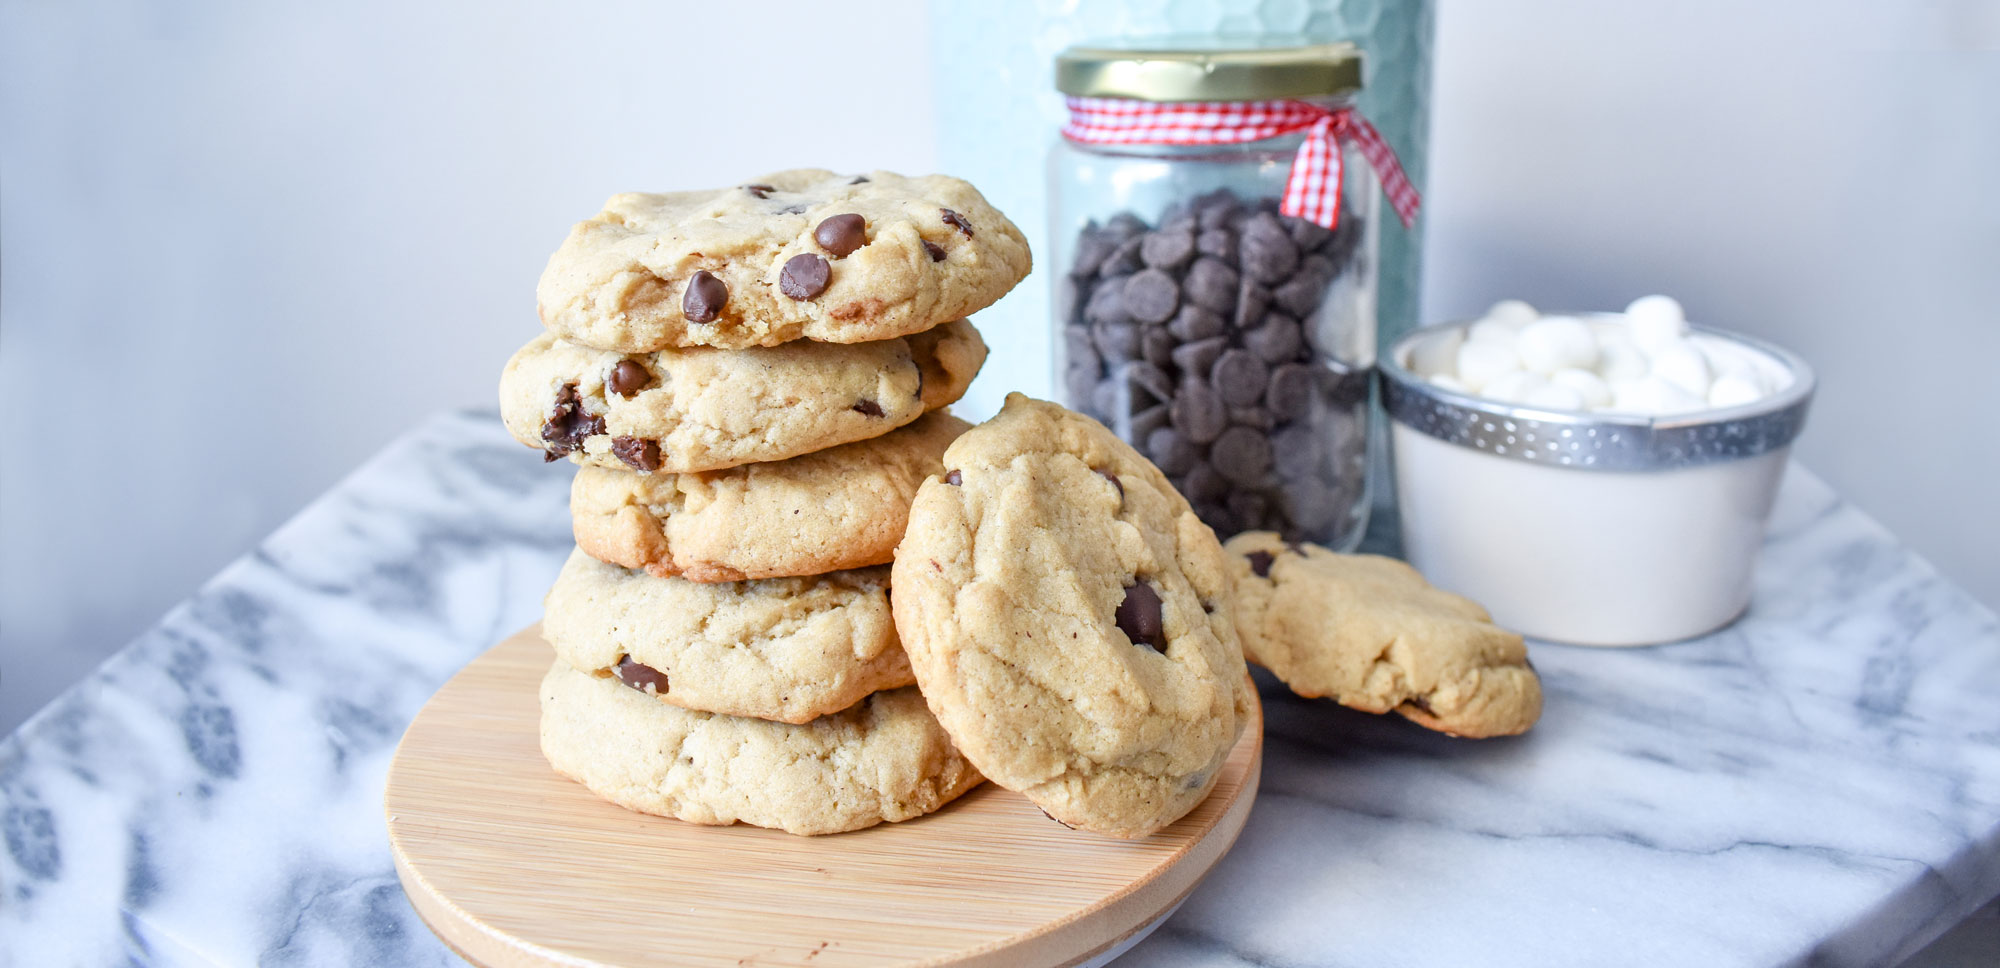 Smile Cafe Chocolate chip cookie recipe for kids diary, peanut and egg free